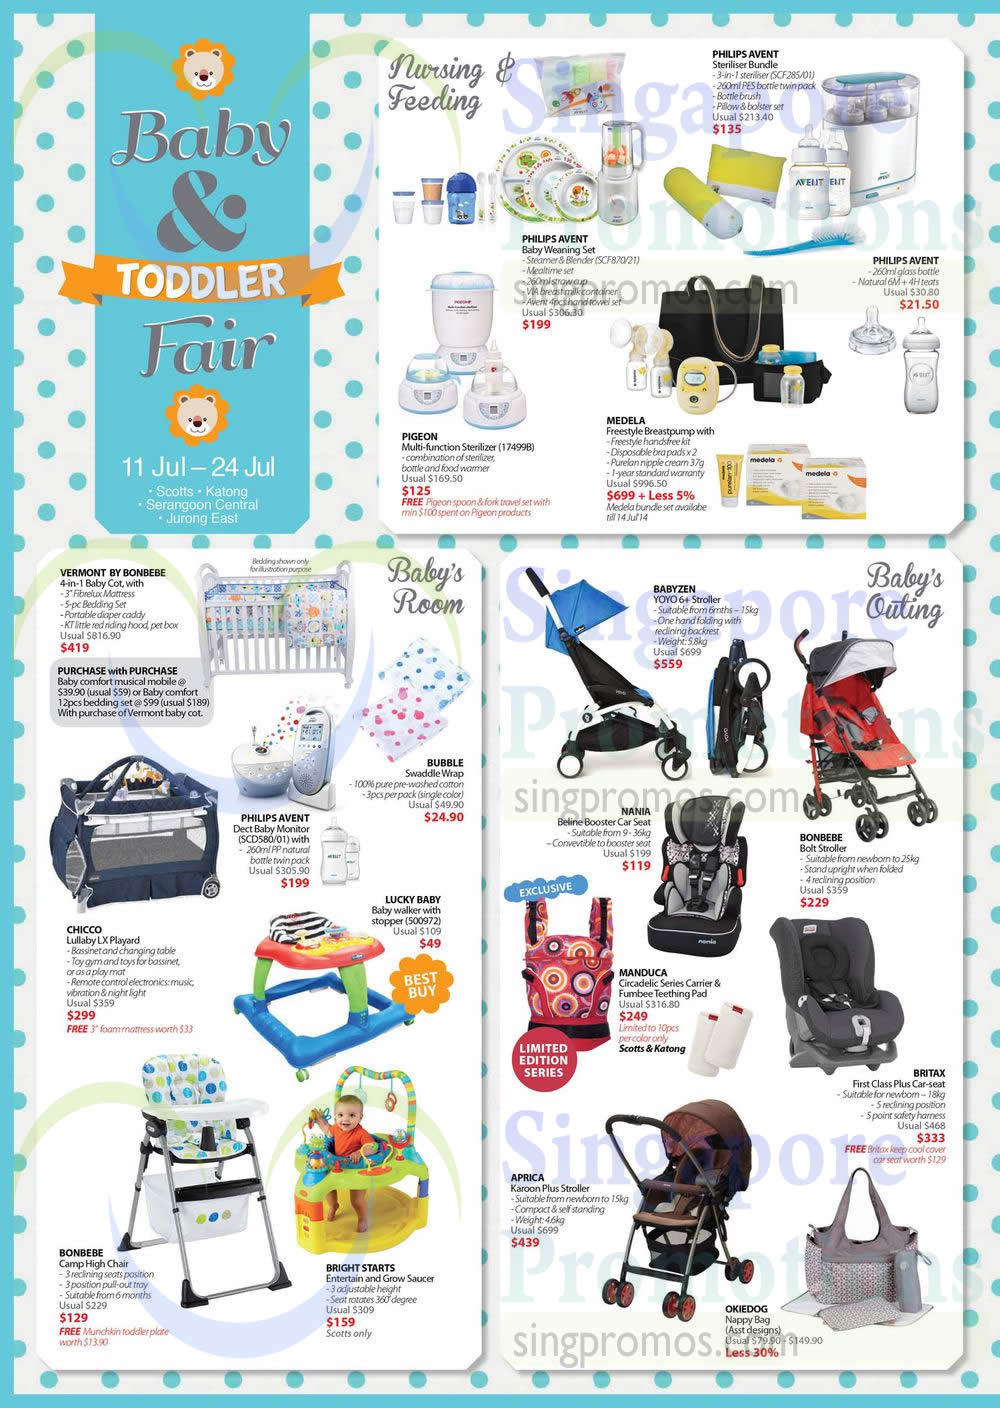 Nursing, Feeding, Baby Room, Outing Accessories Philips Avent, Medela, Manduca, Bright Starts